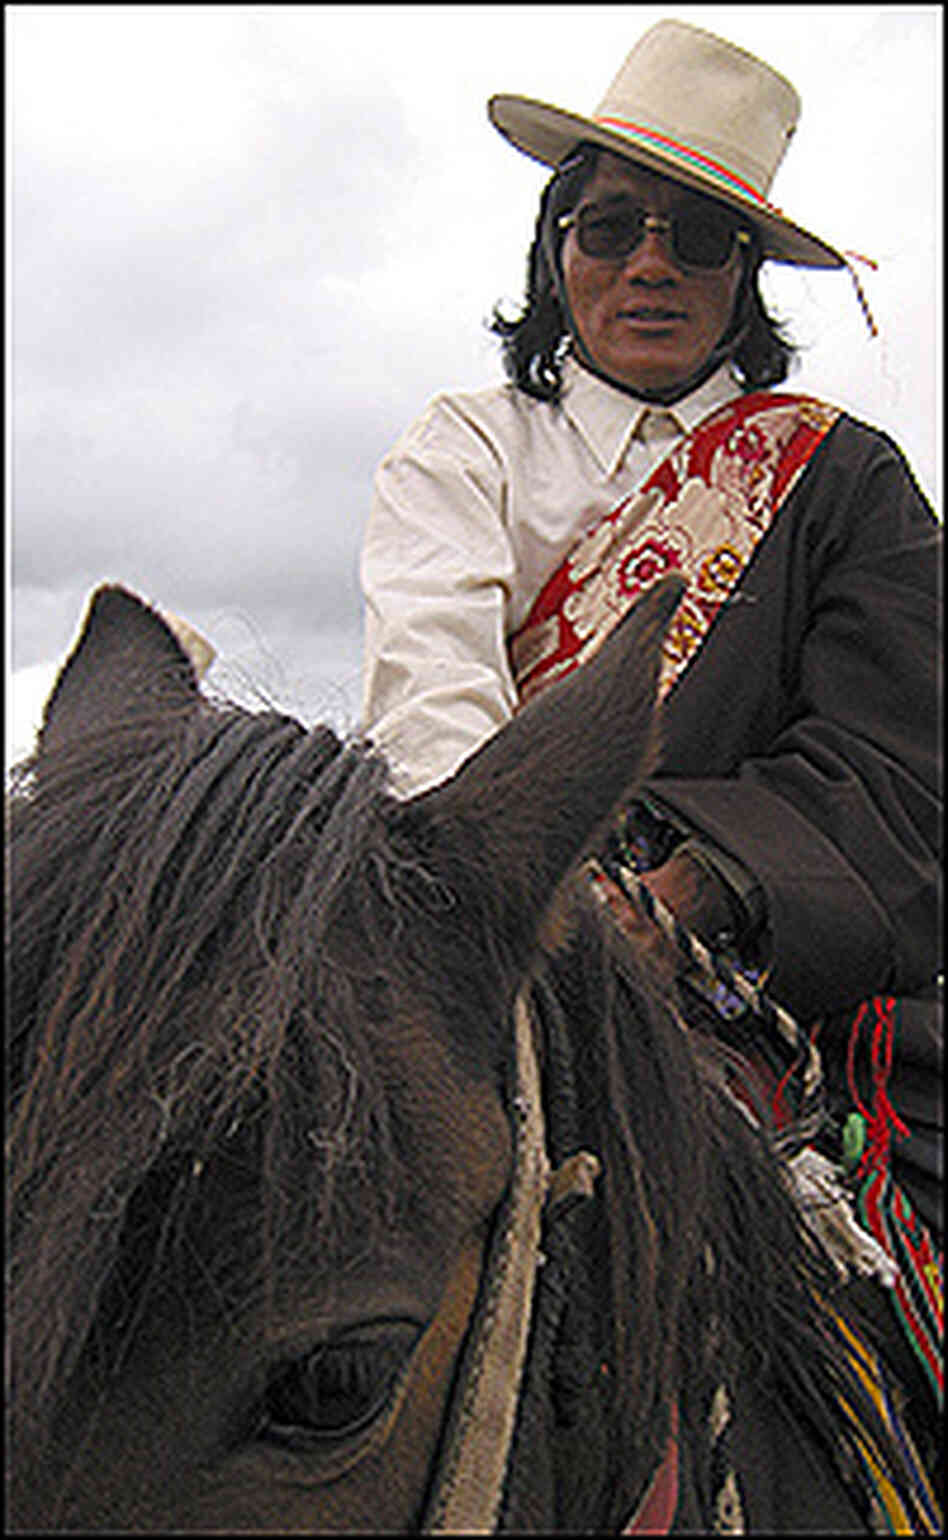 Typical attire for a Khampa horseman includes a western-style shirt under a Tibetan robe.